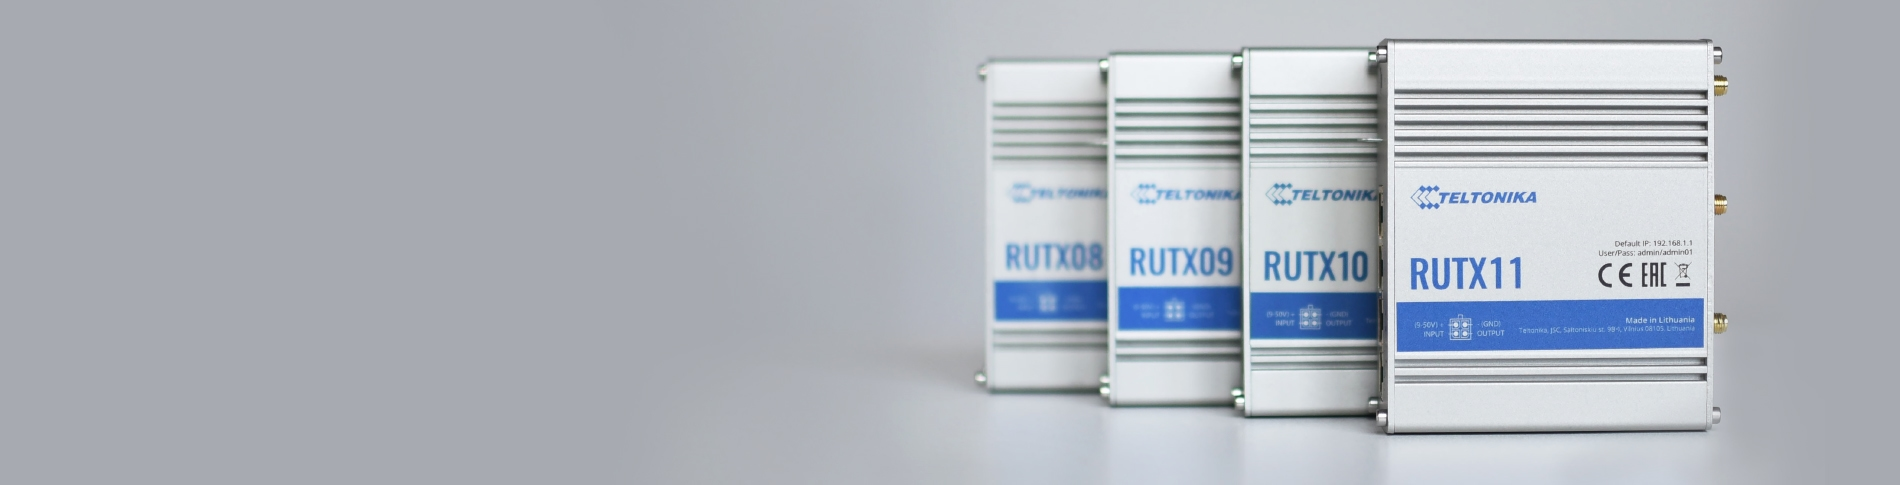 Significant RutOS update for RUT X series devices!